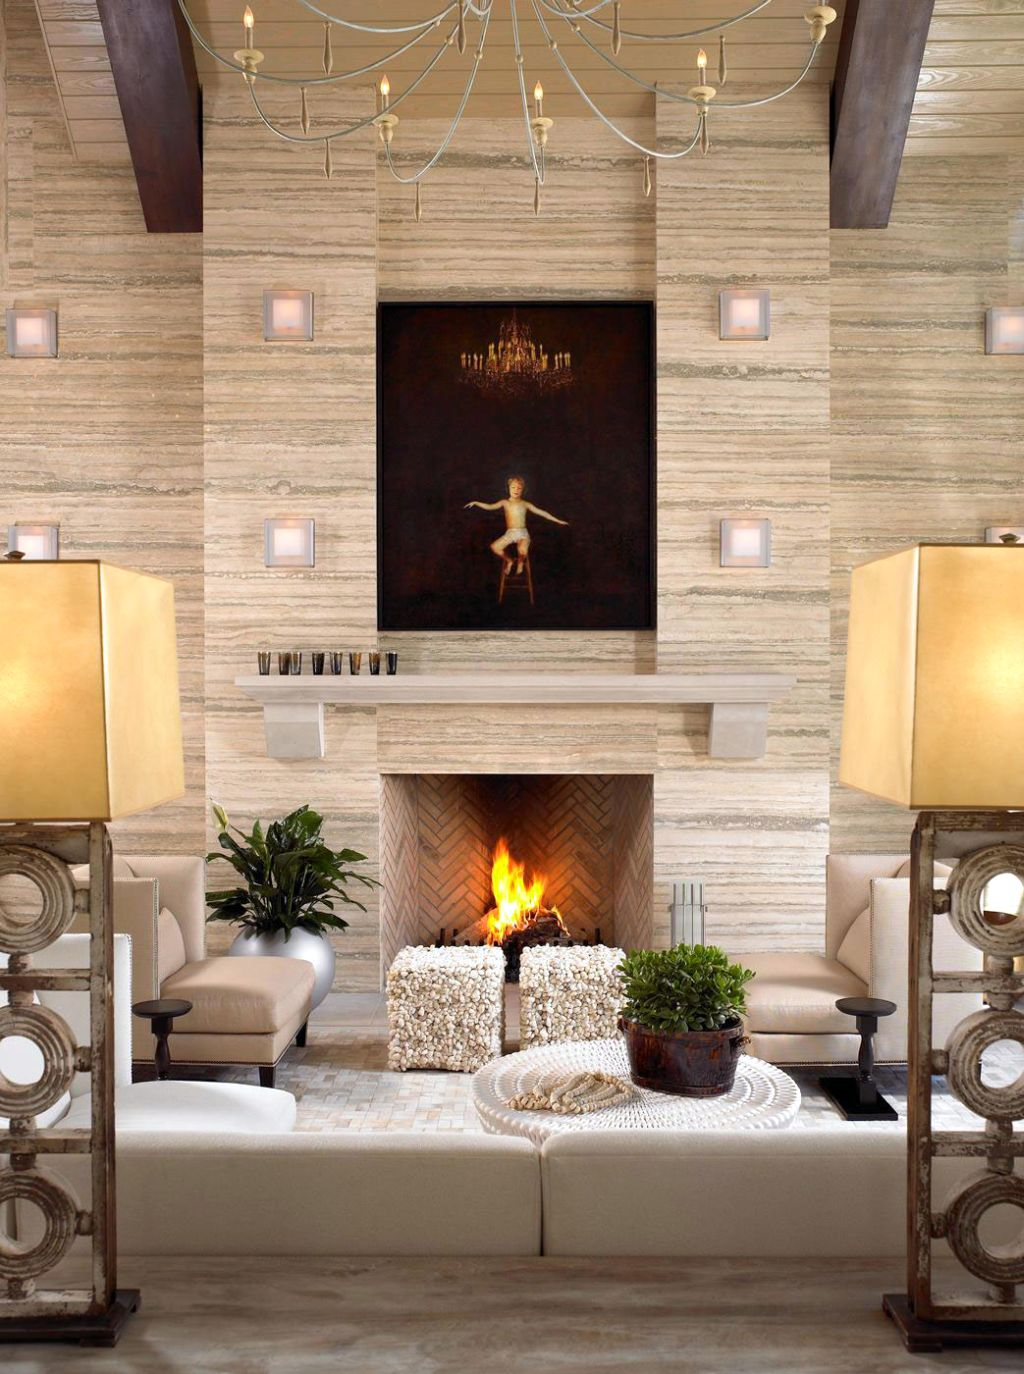 Fireplace Design Ideas 36 fireplace design ideas youtube Gallery For Scandinavian Fireplace Design Ideas